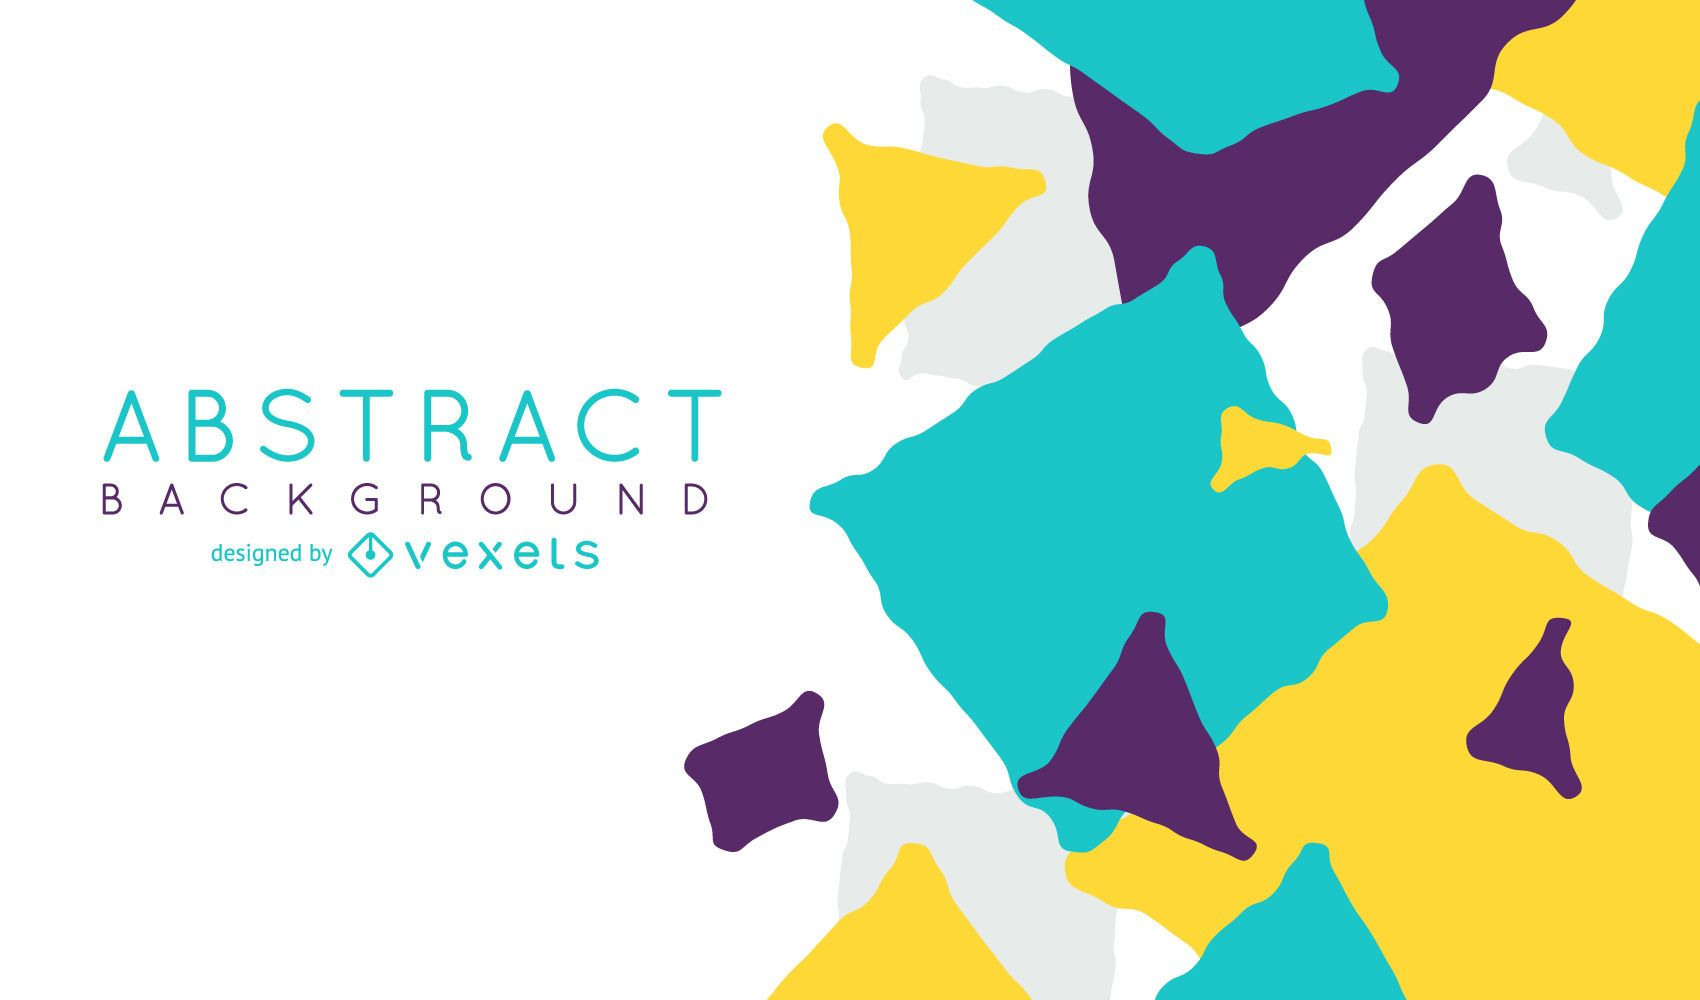 Background design with abstract shapes